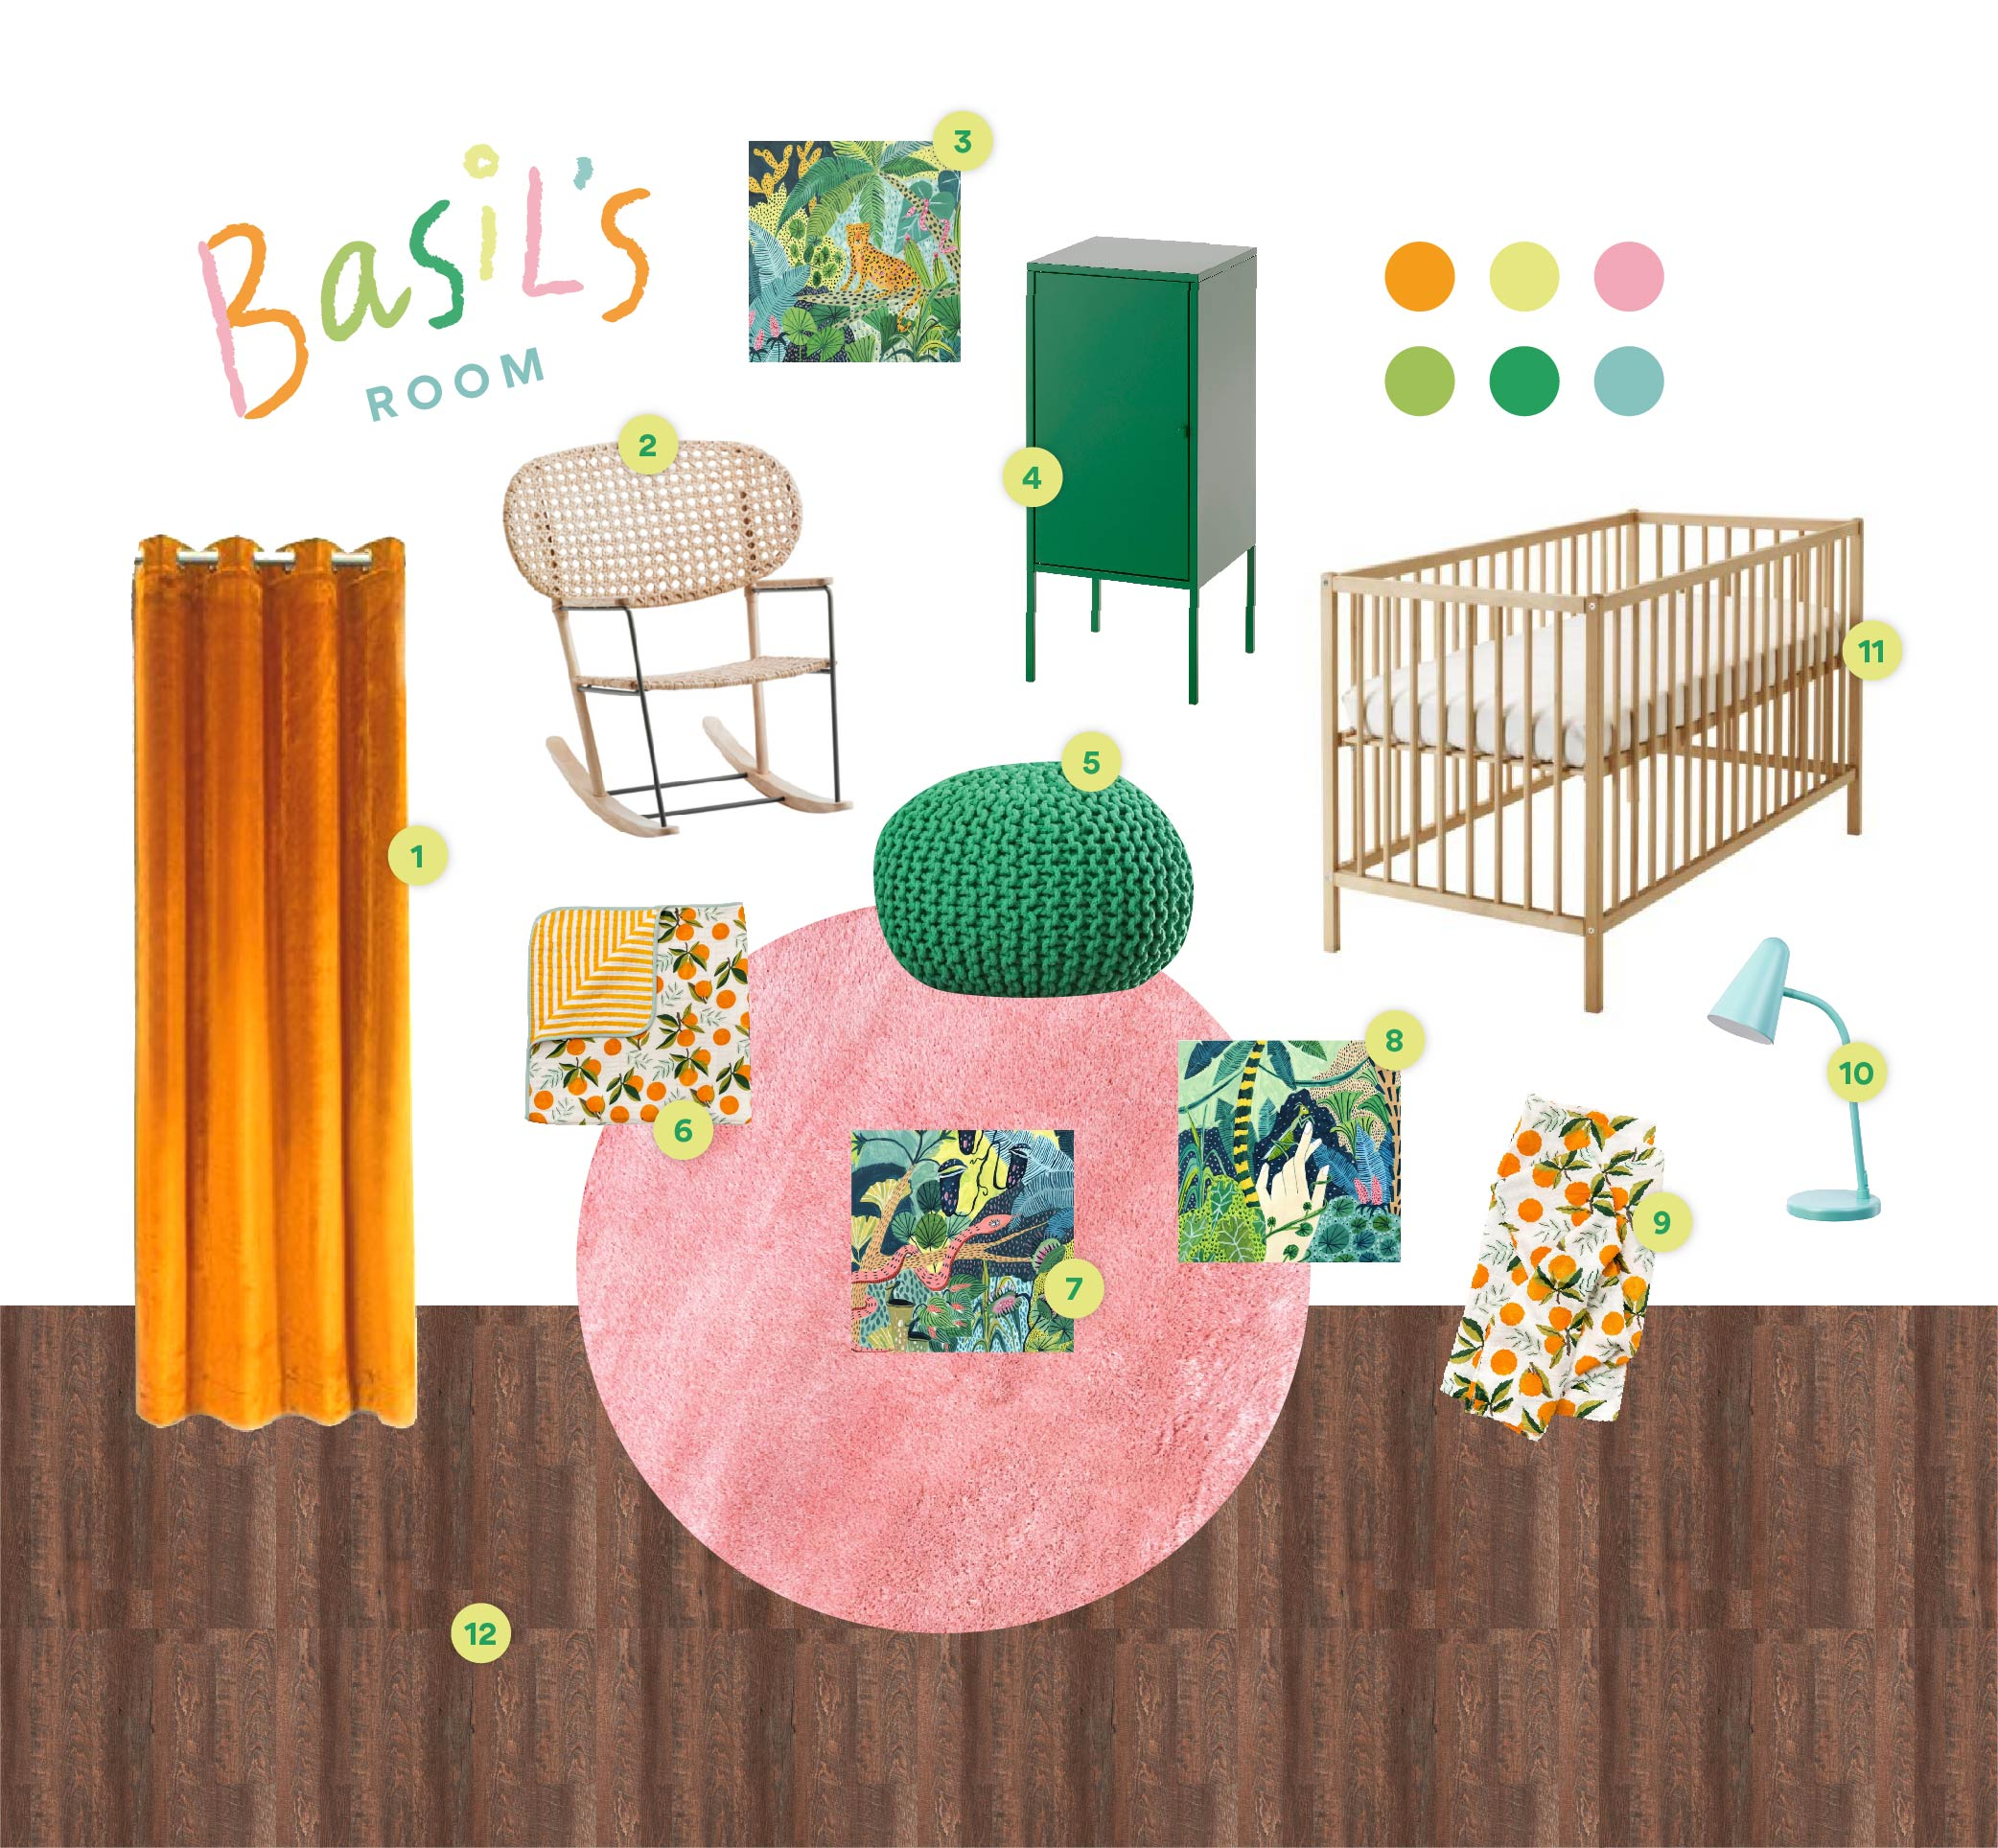 Vision Board for Basil's Room! Except it's no longer a vision board and it's more like a reality board because we bought everything and are now in the process of putting it all together! Links below!